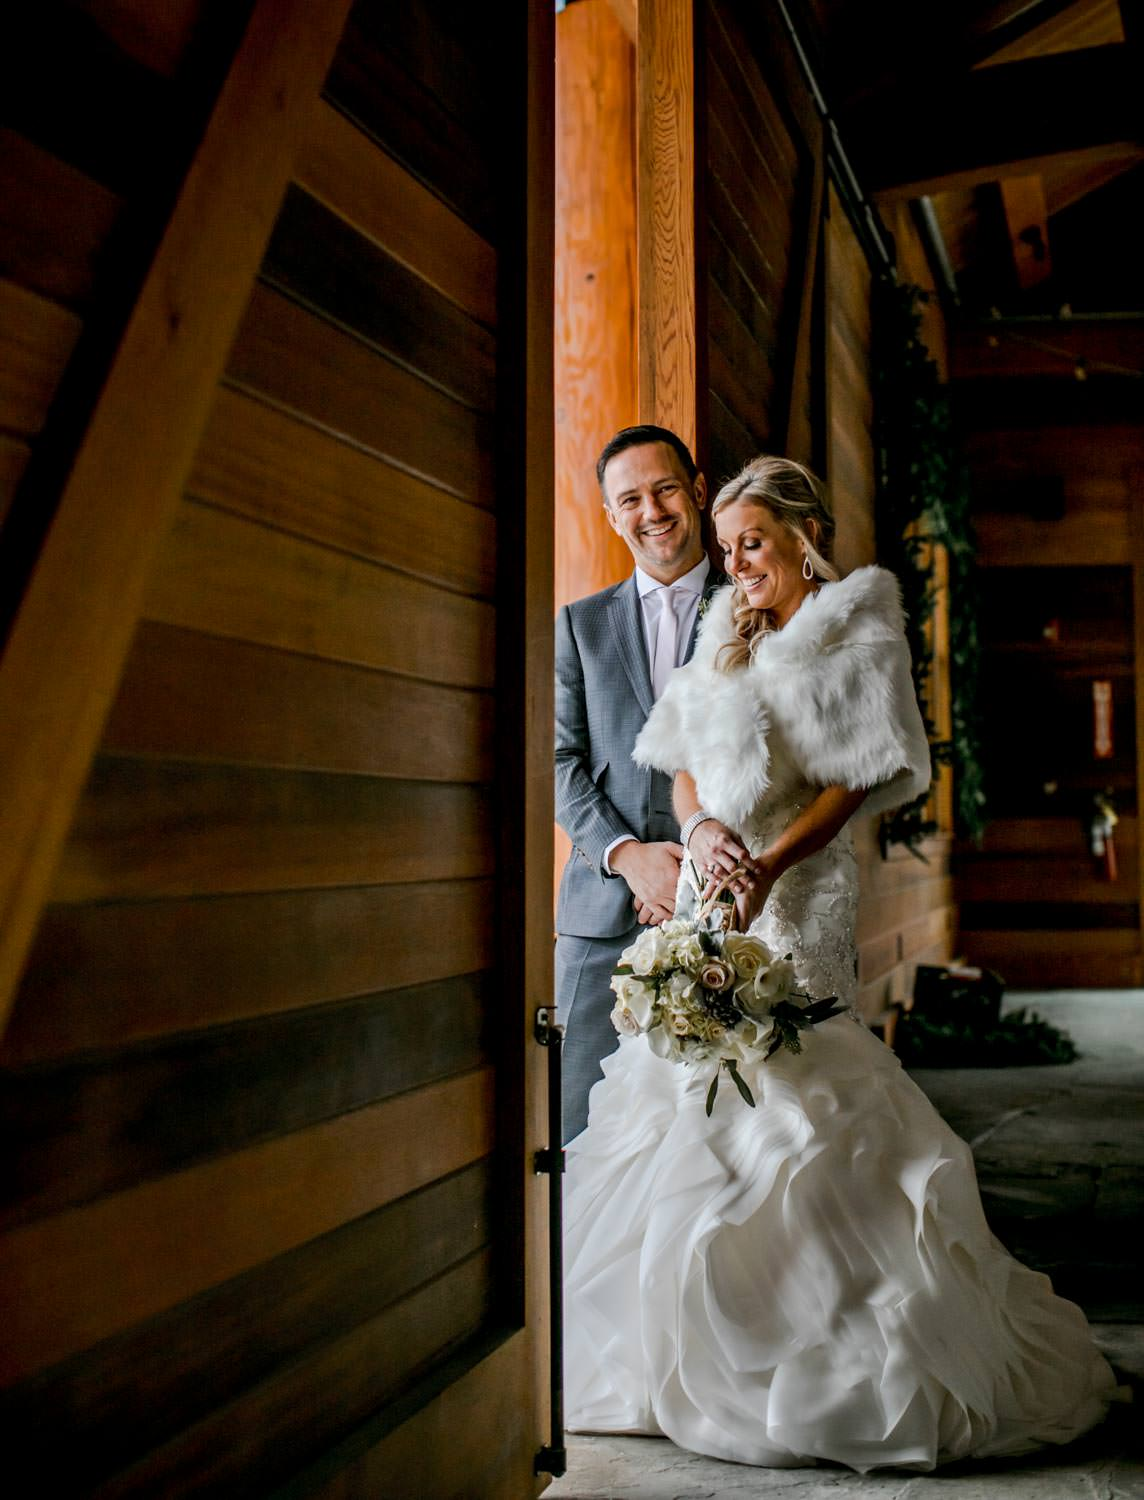 bride and groom stand in doorway of warming lodge at Stowe Mountain resort for wedding portraits